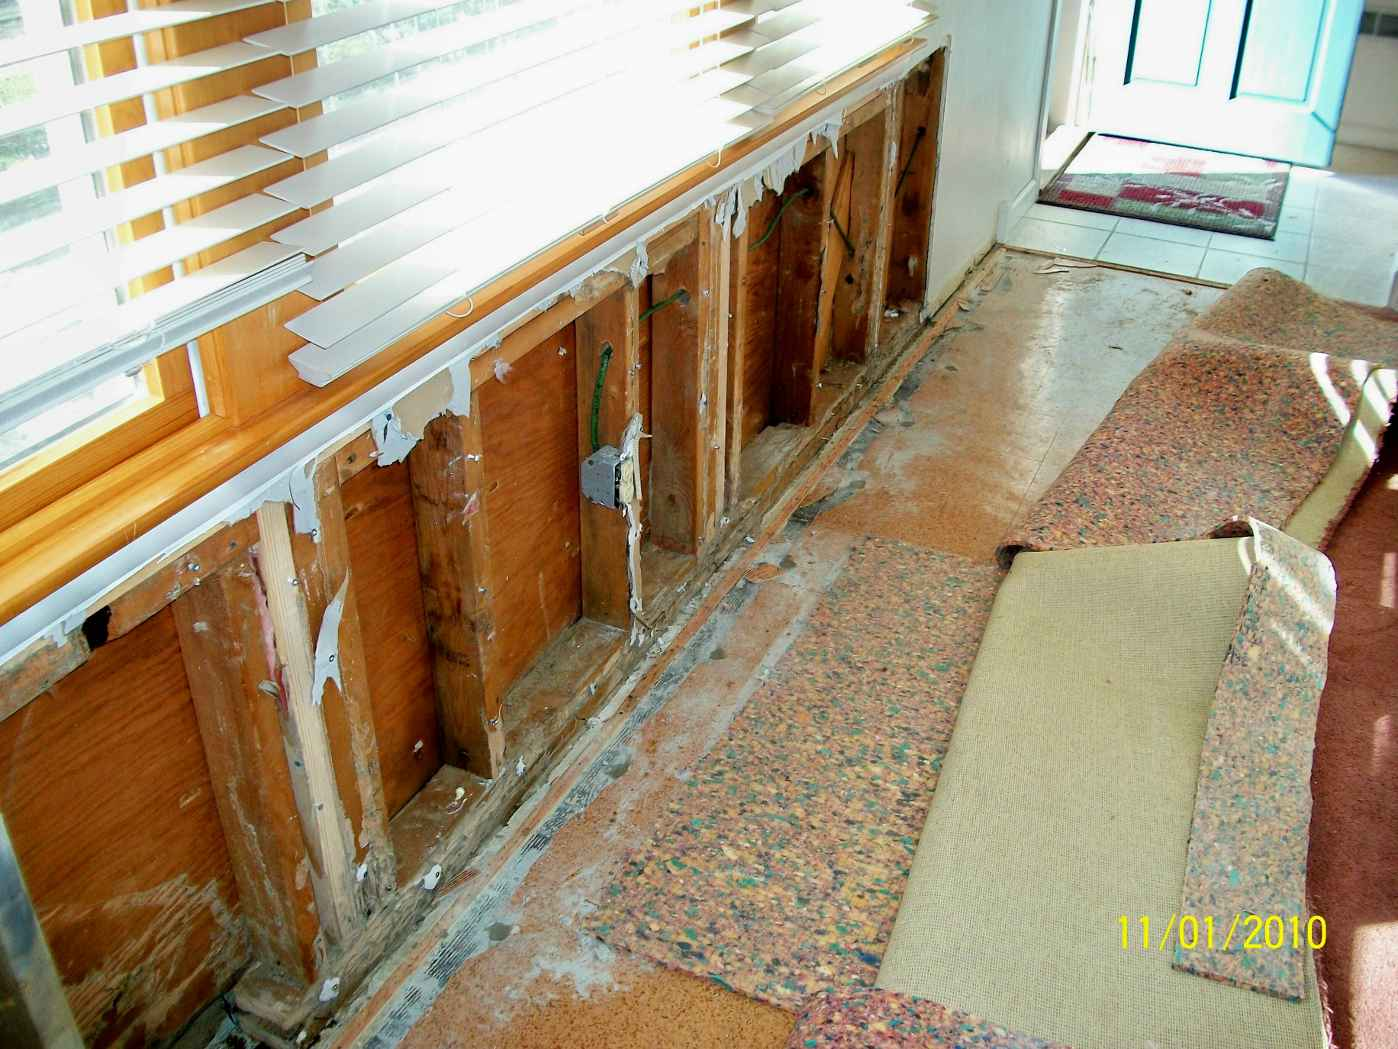 Termite Damaged baseboards, sill plates, wall studs, jack studs and headers